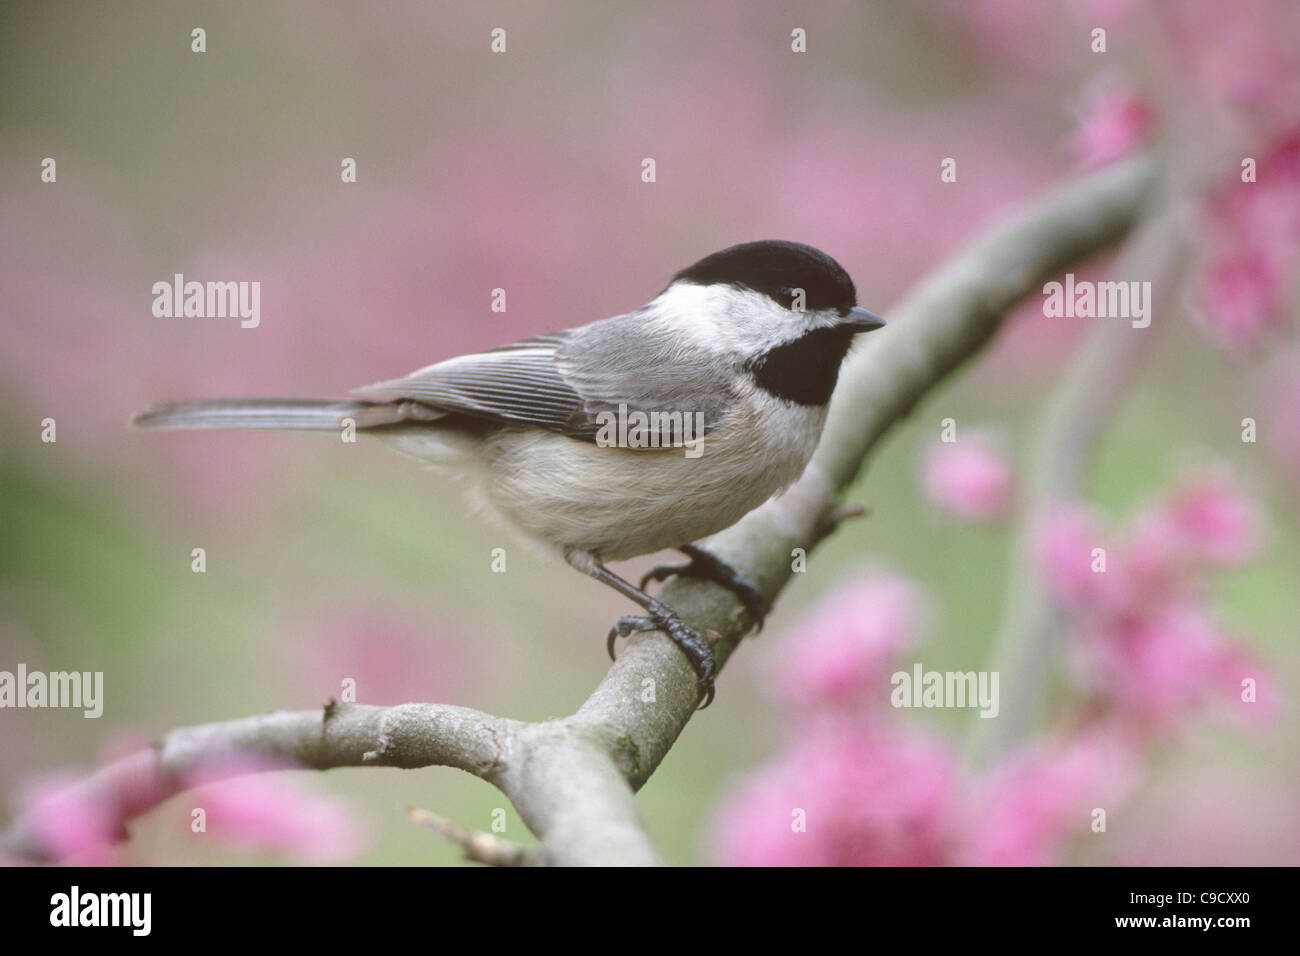 Carolina Chickadee perching in Redbud Blossoms - Stock Image